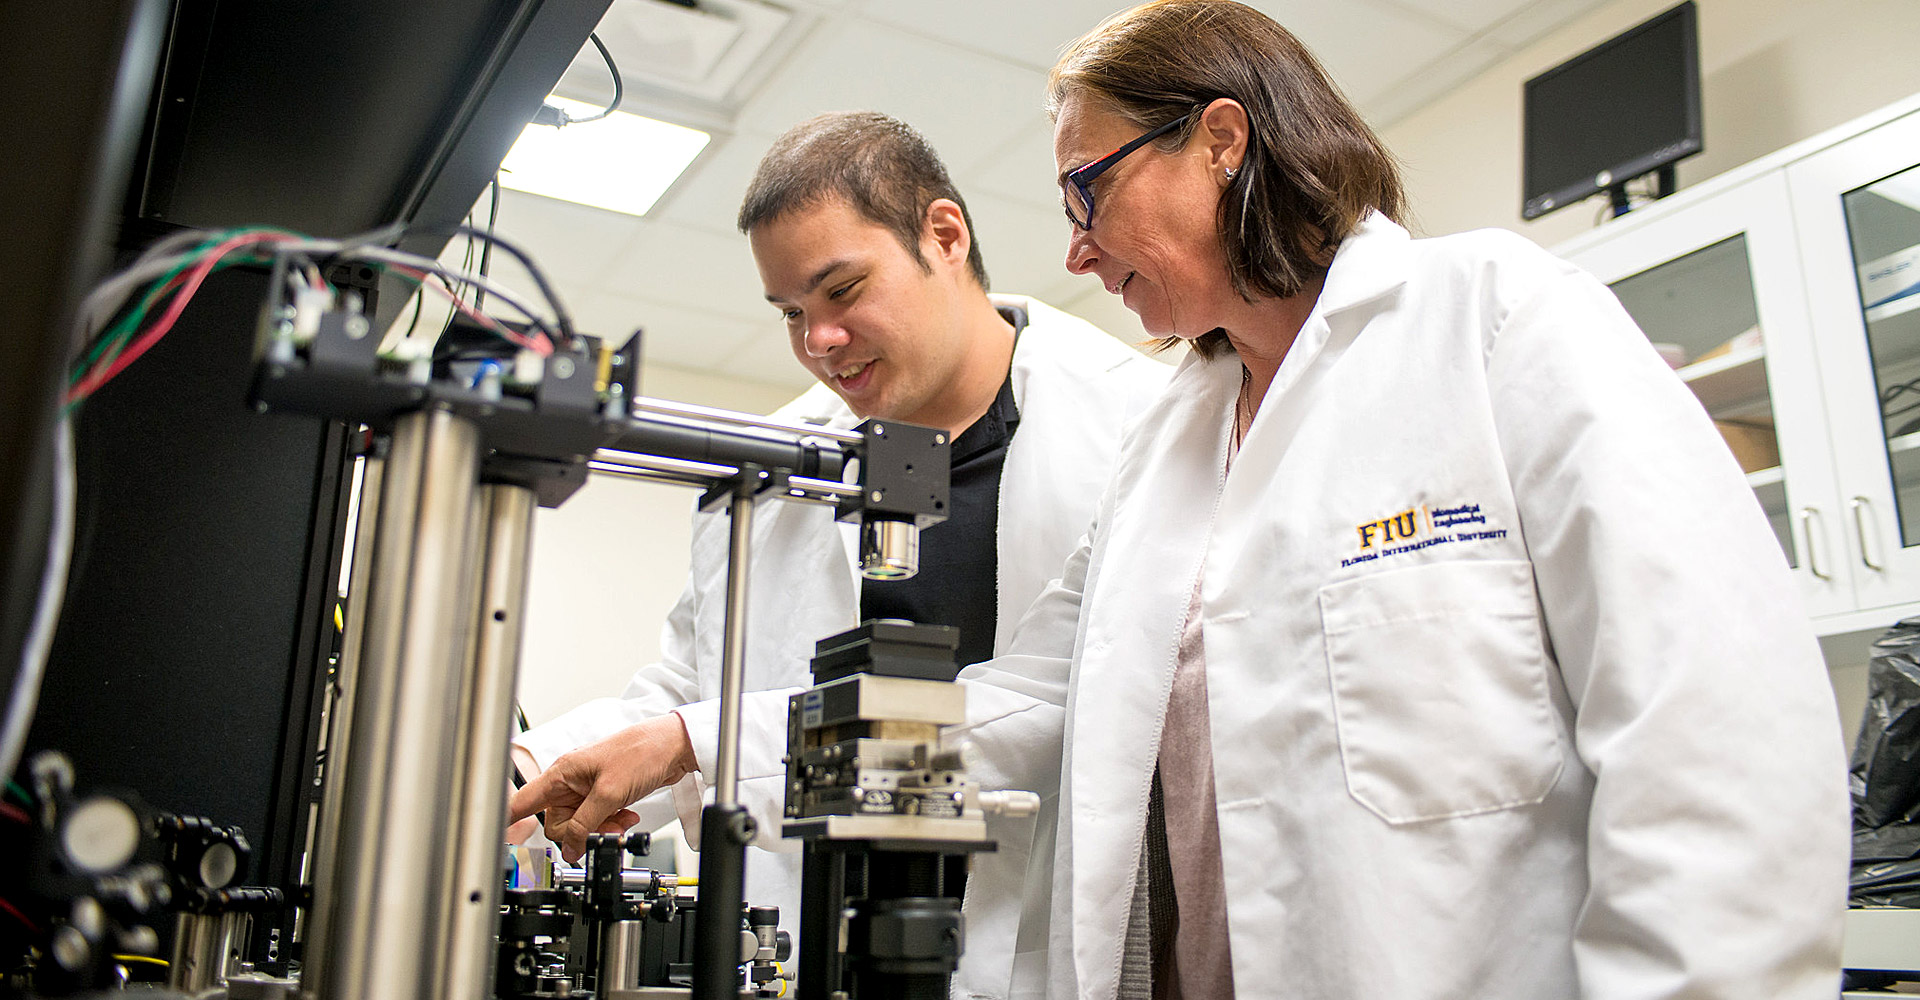 Meet The FIU Biomedical Engineering Distinguished Faculty